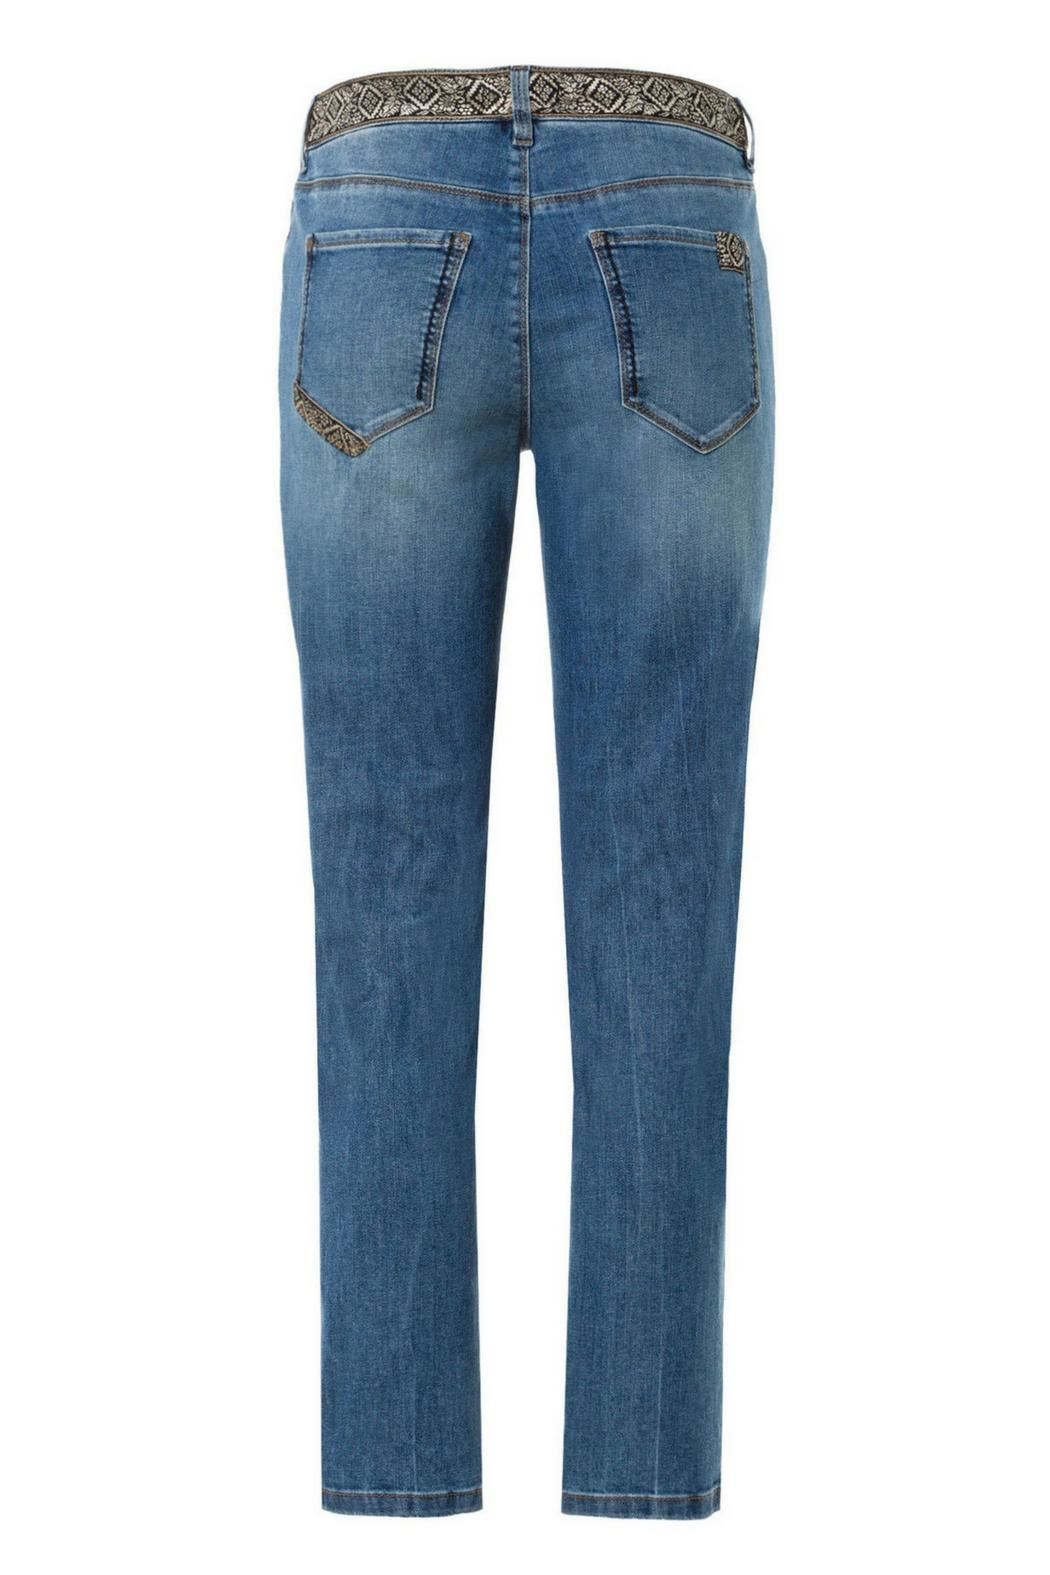 Gardeur Luxurious Embroidered Jeans - Side Cropped Image